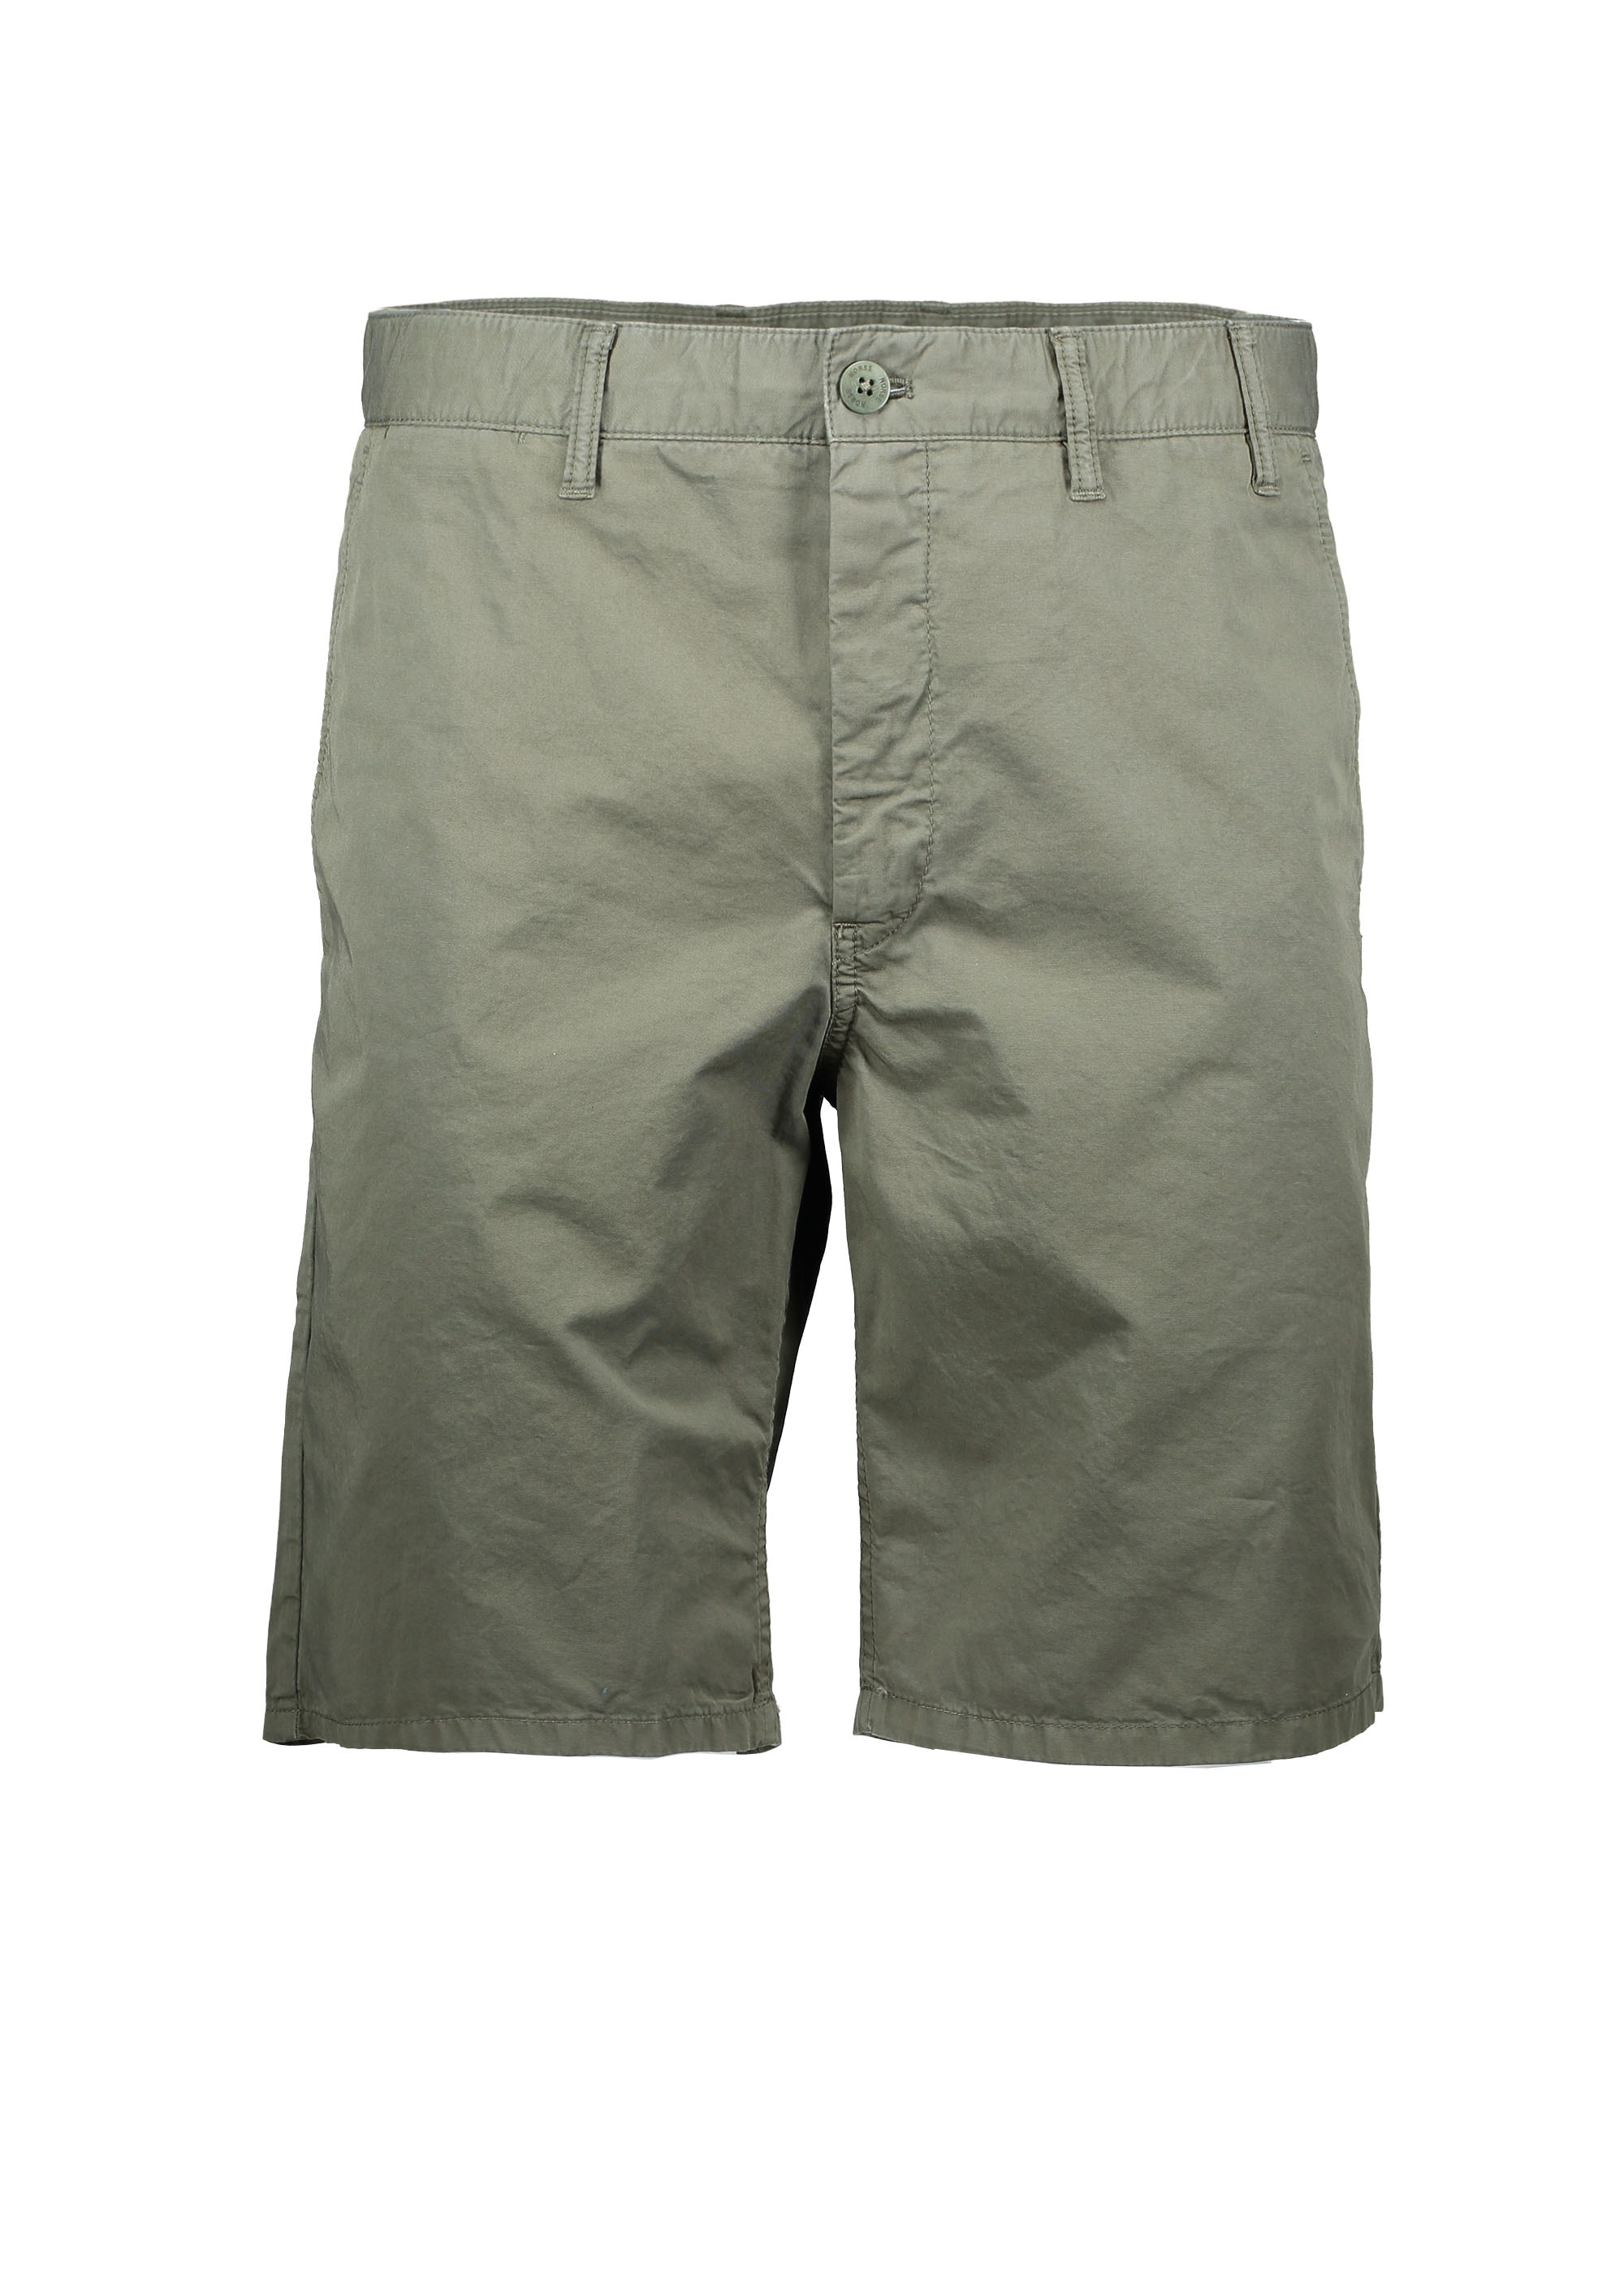 ab9c8e226a5 Norse Projects Aros Light Twill Shorts - Dried Olive - Triads Mens ...